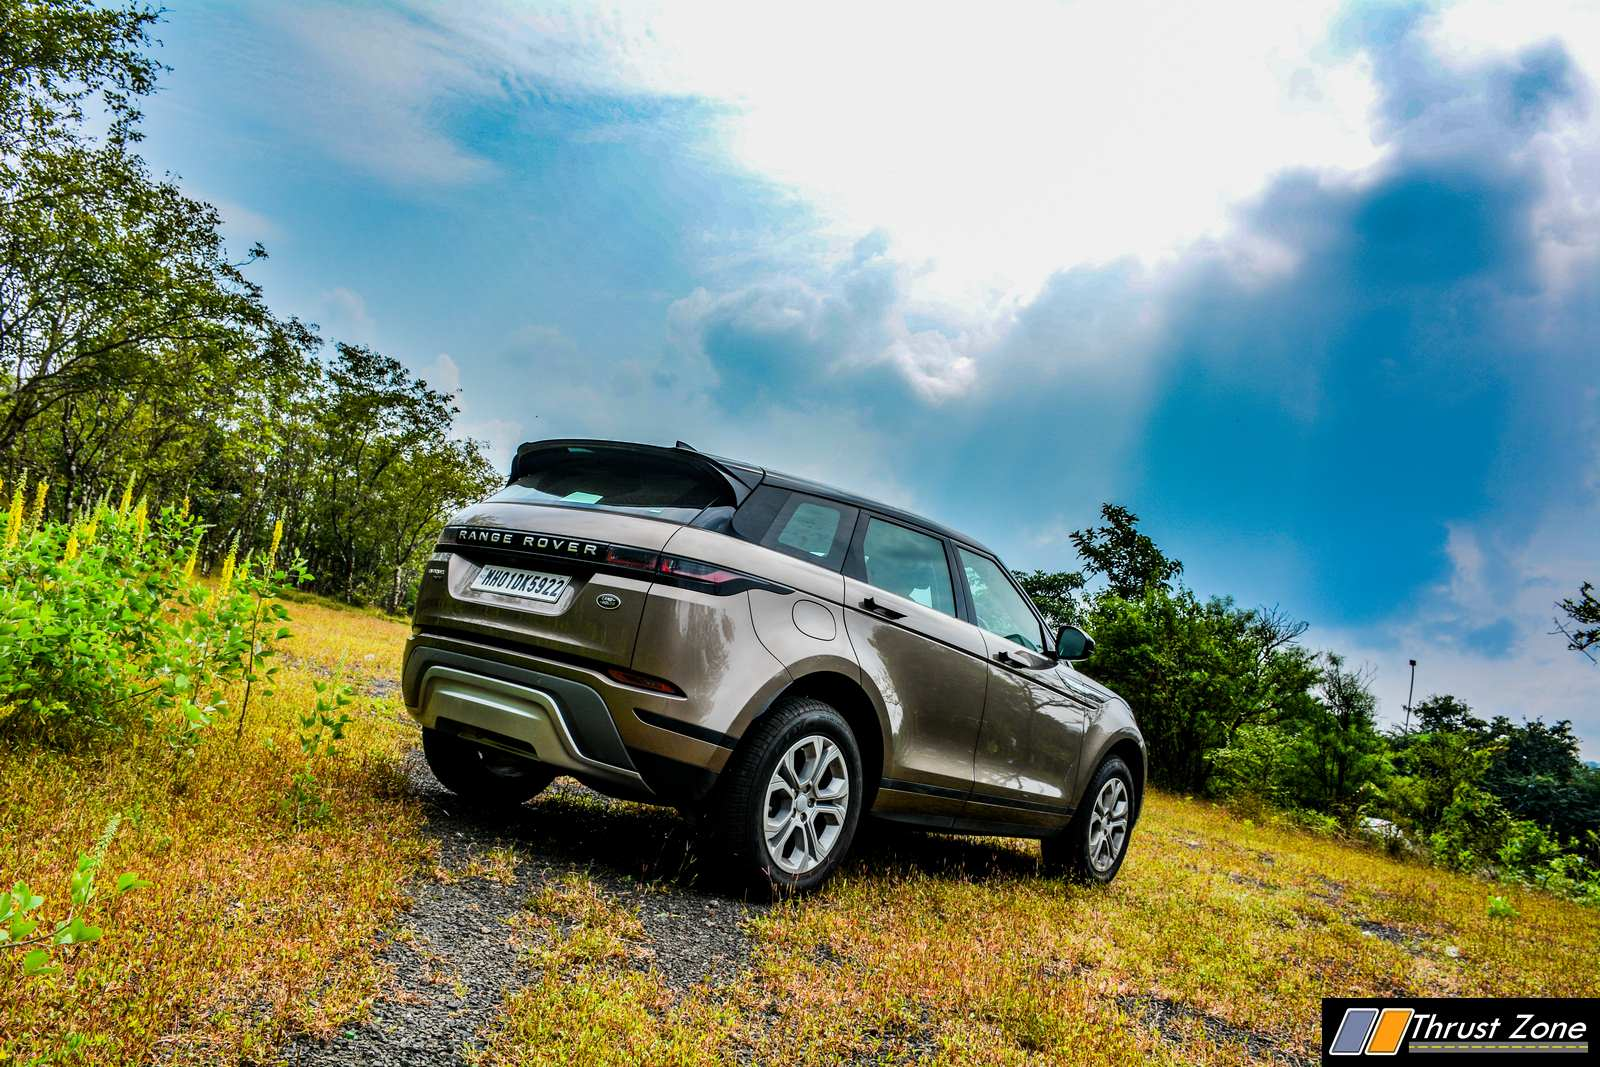 2020-Range-Rover-Evoque-Diesel-India-Review-10